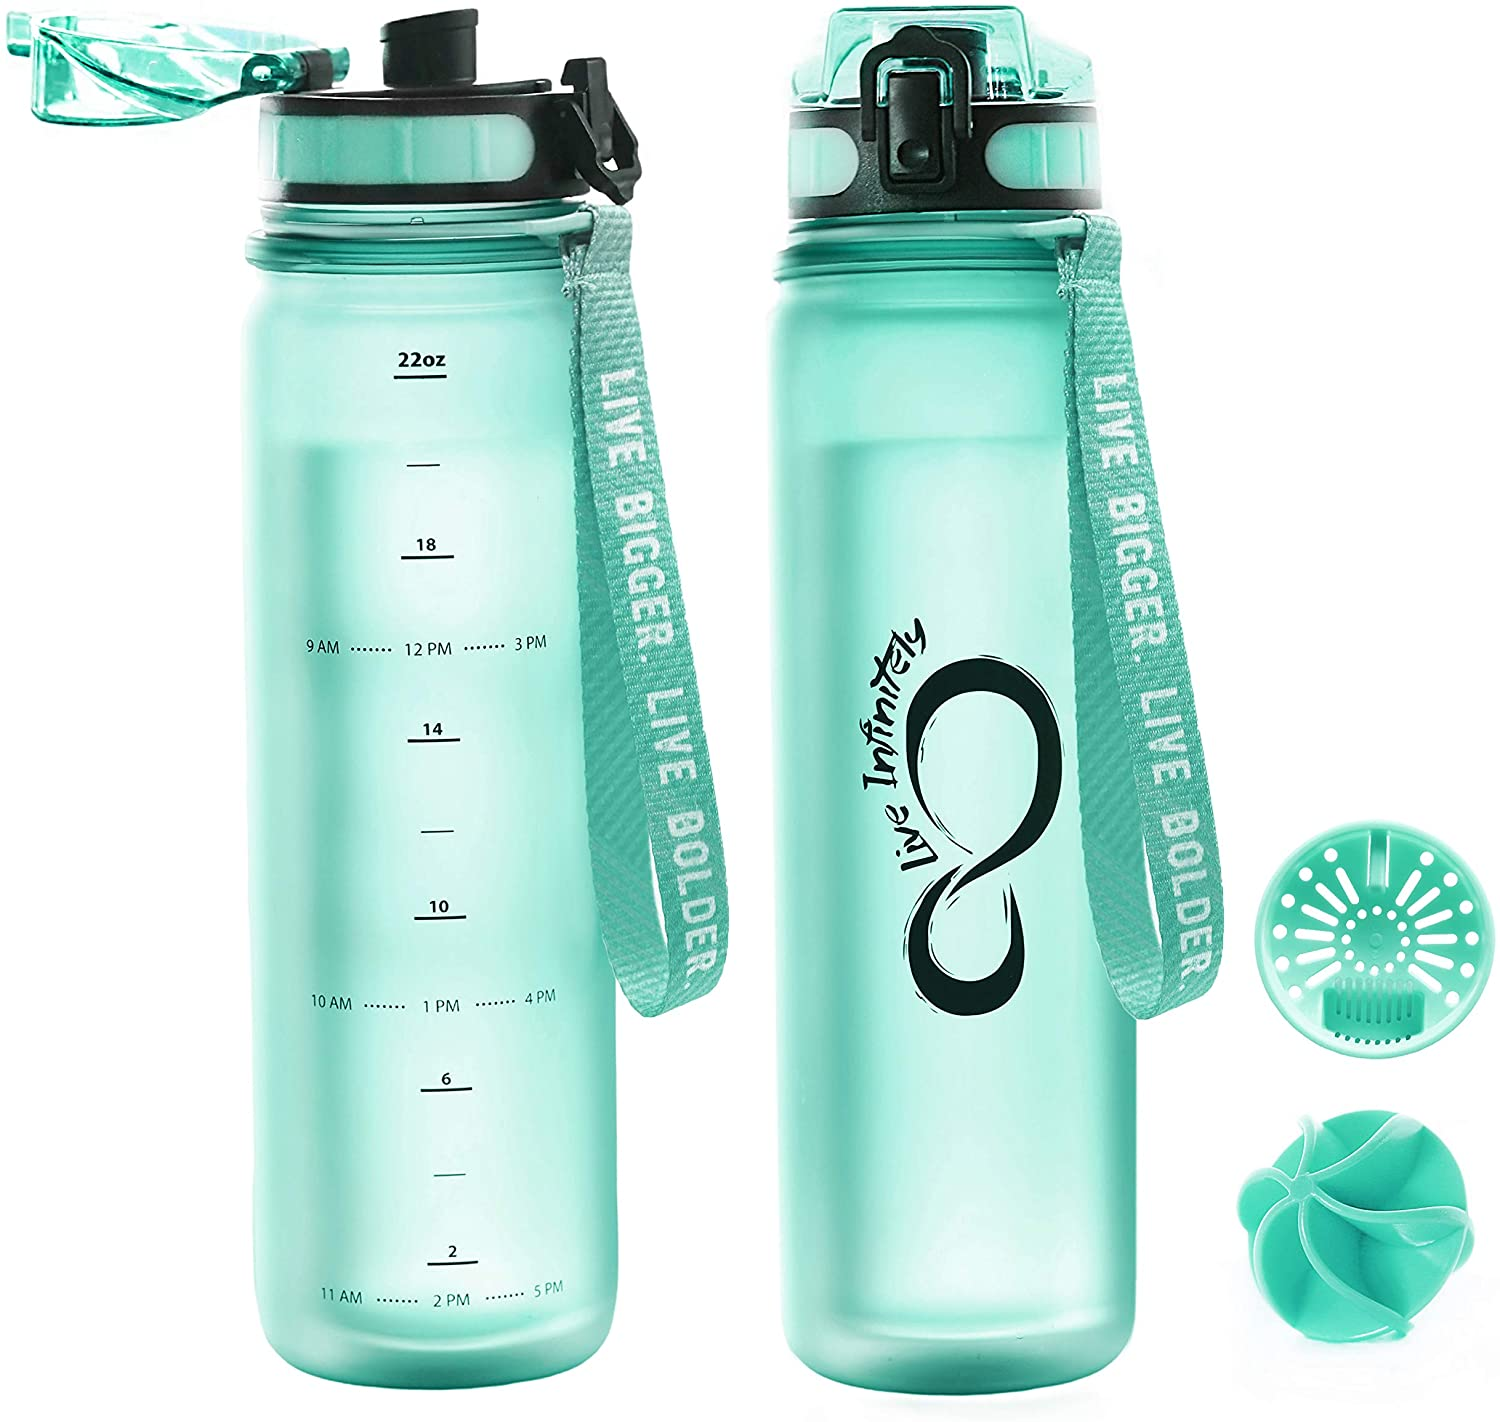 Live Infinitely 24 oz Insulated Double Walled Water Bottle with Time Marker, Fruit Infuser Screen & Shaker Blending Ball - Locking Flip Top Lid & Durable Rubberized Bottle Coating